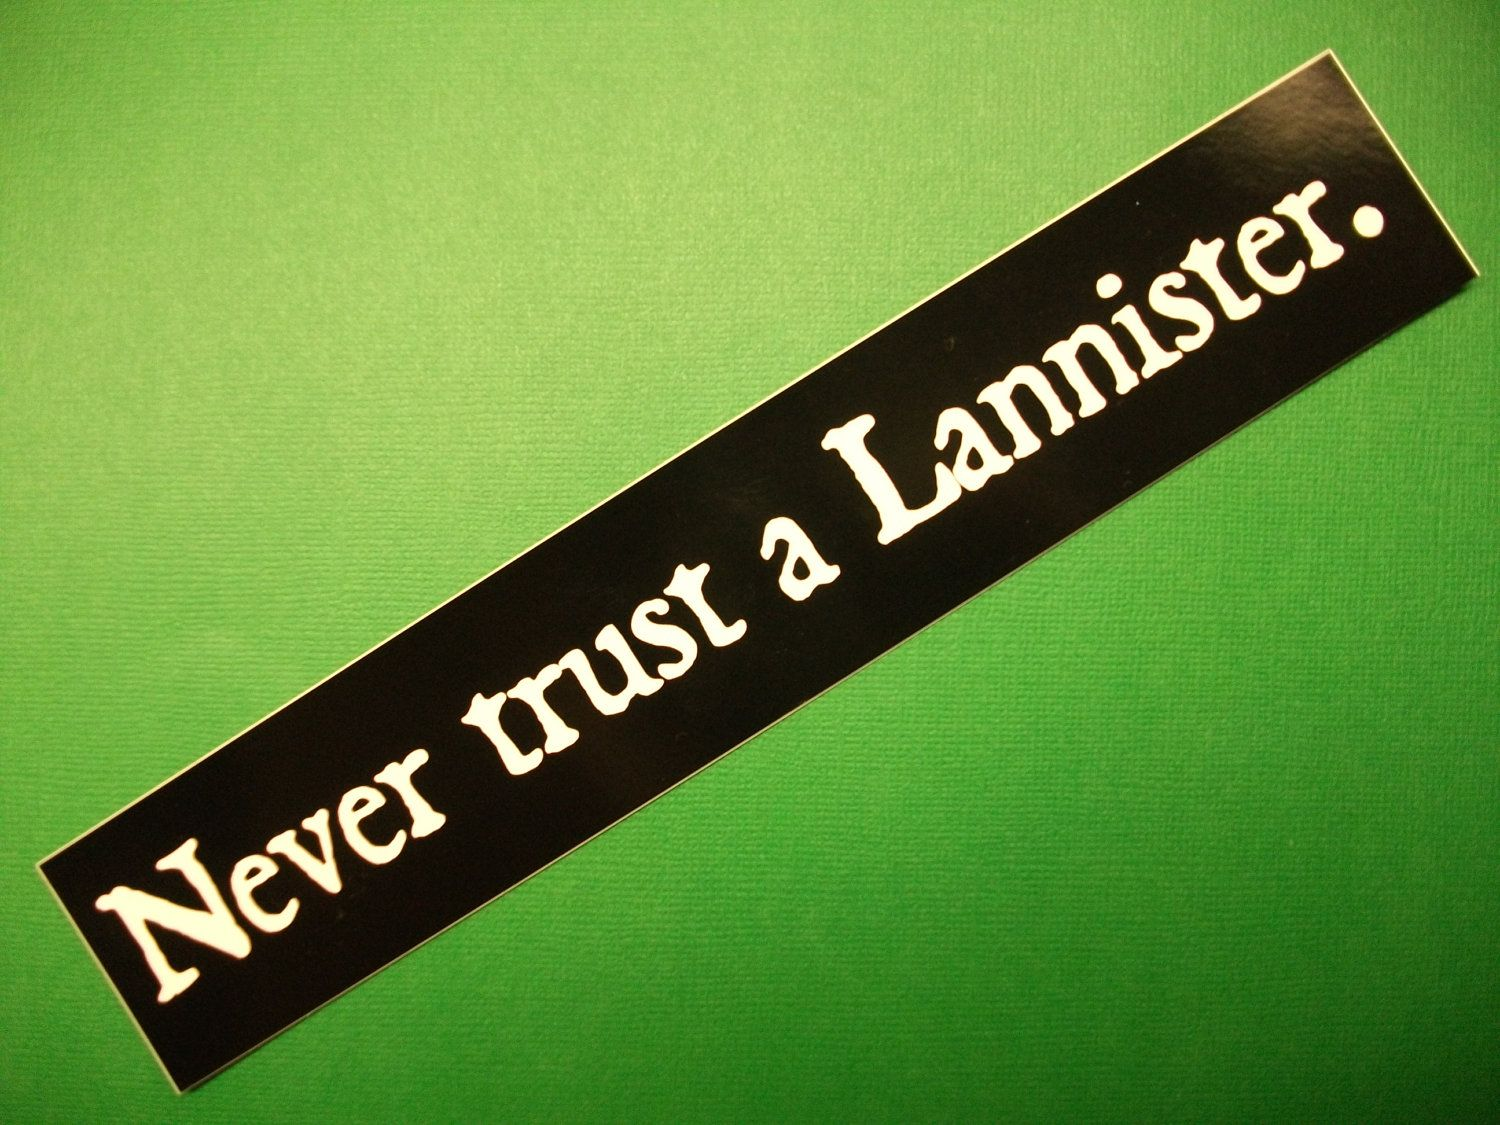 Never trust a Lannister Game of Thrones vinyl bumper